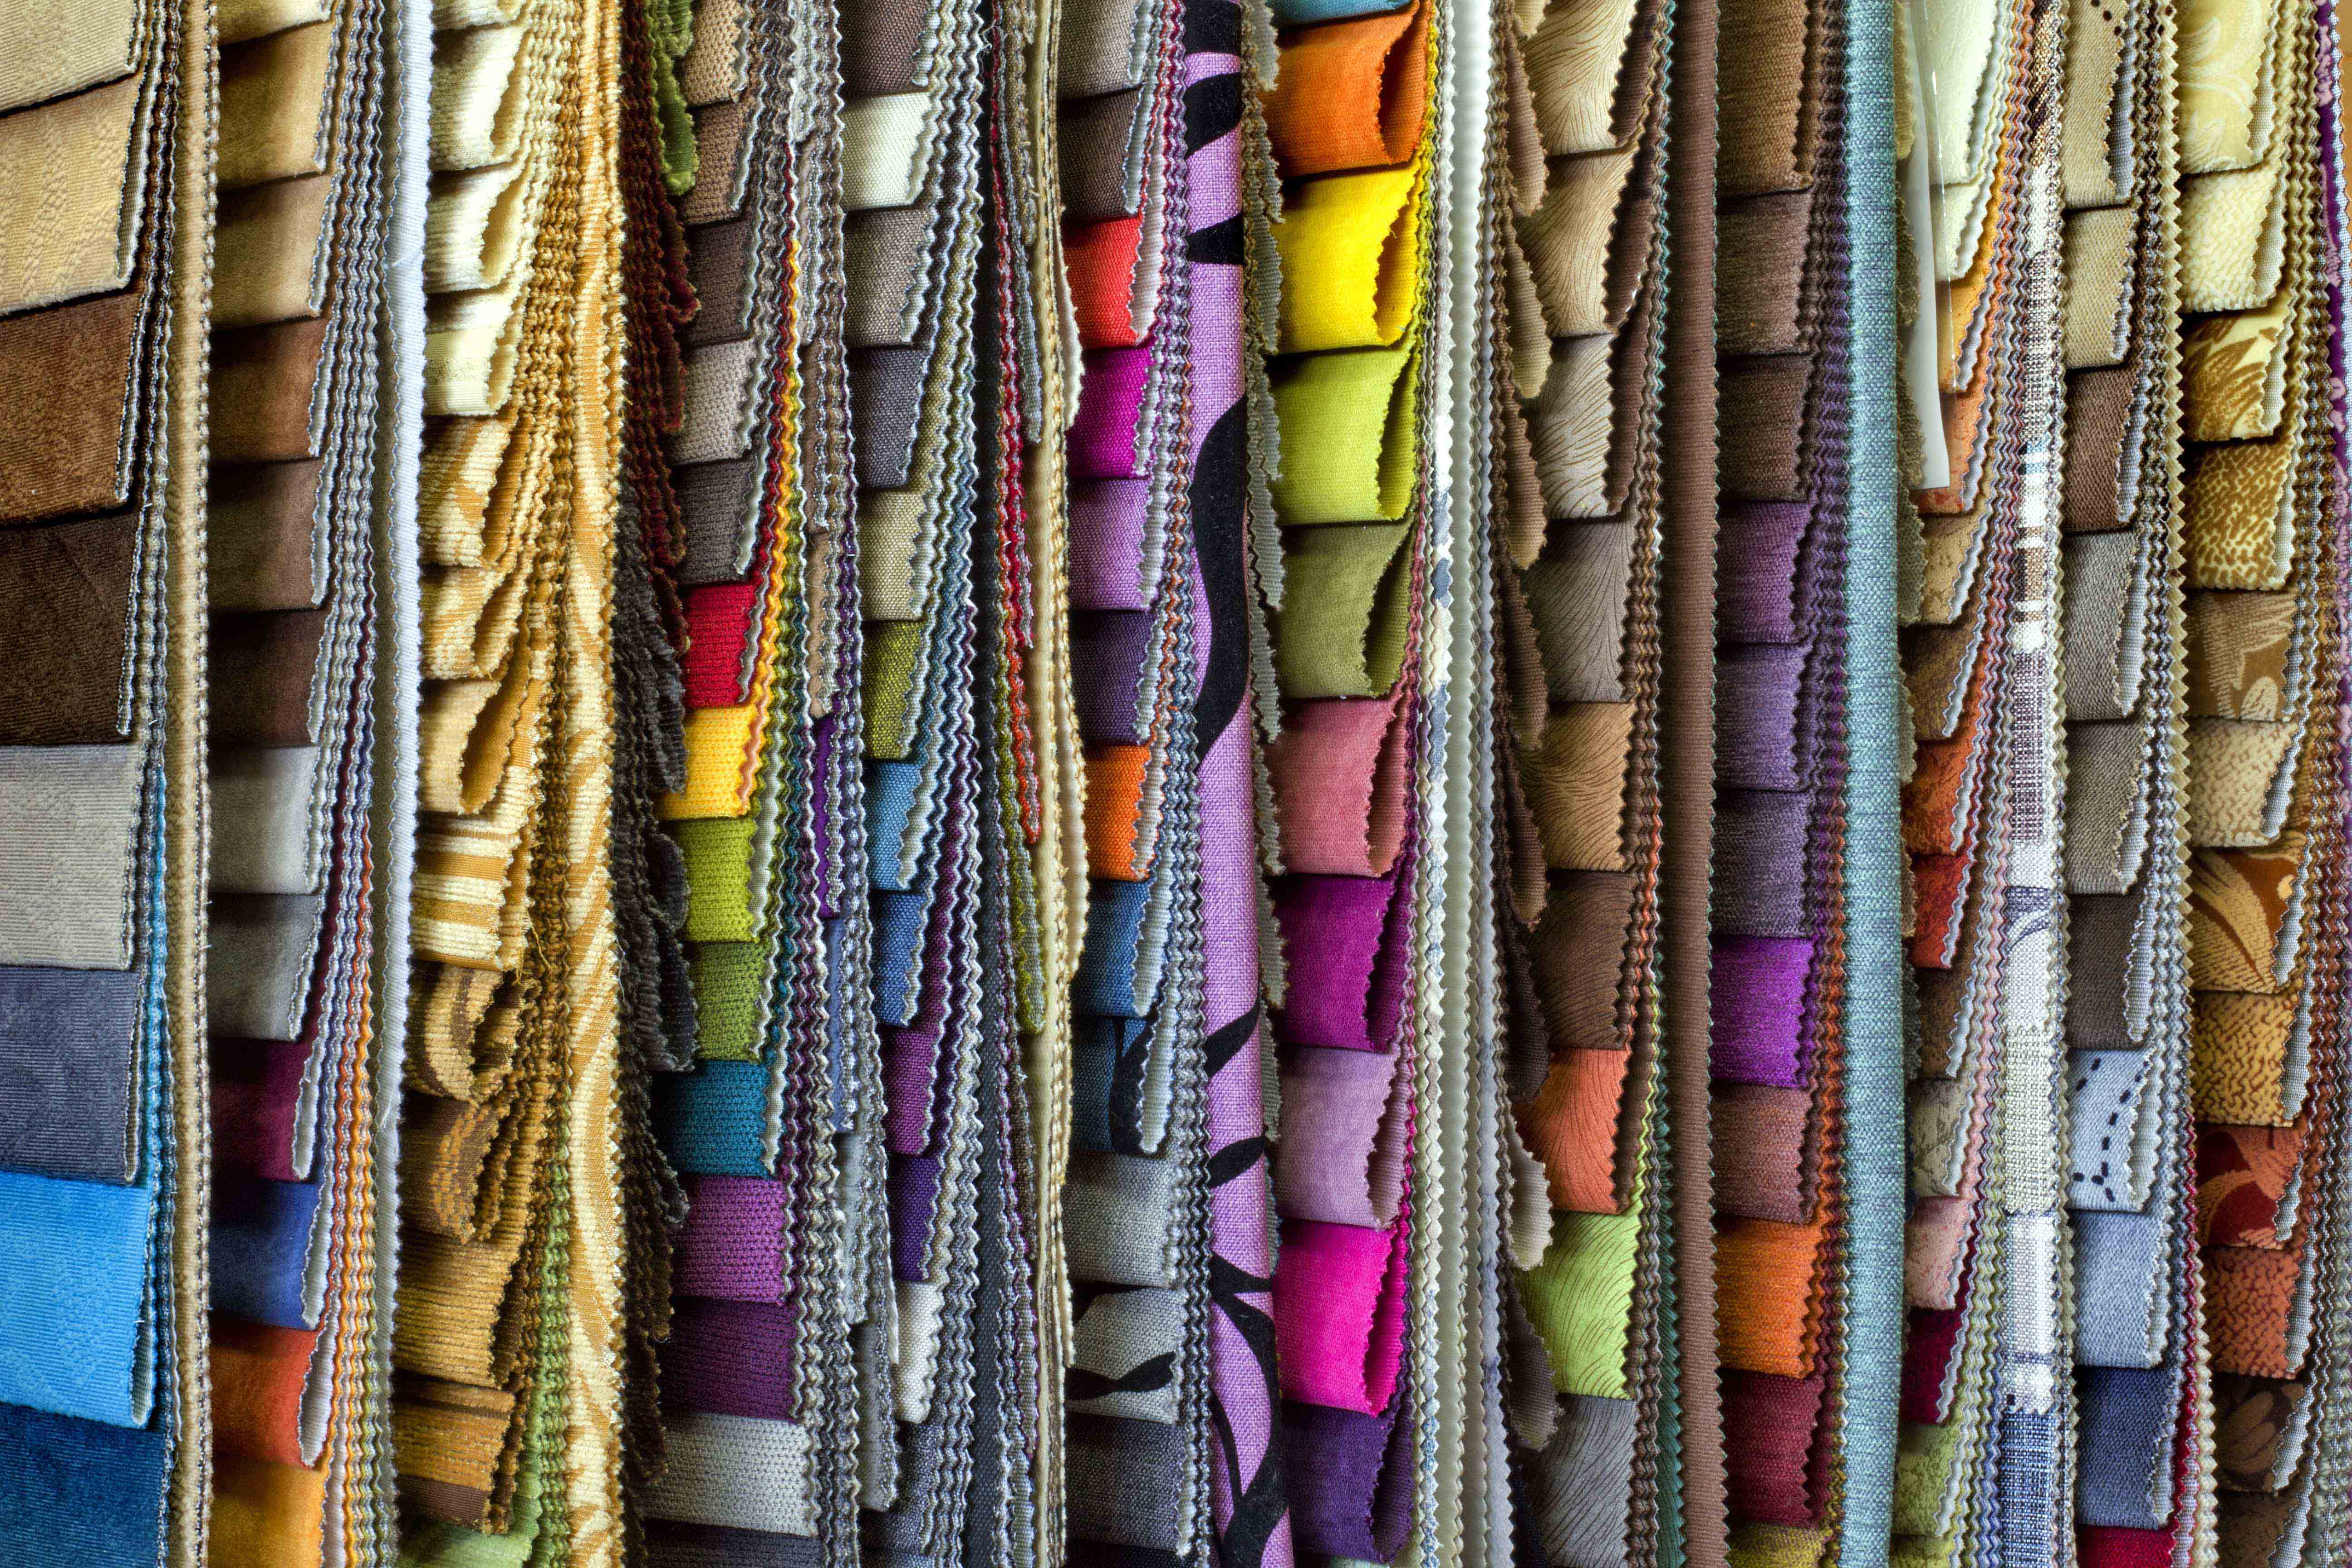 set of multi-colored upholstery samples for upholstered furniture